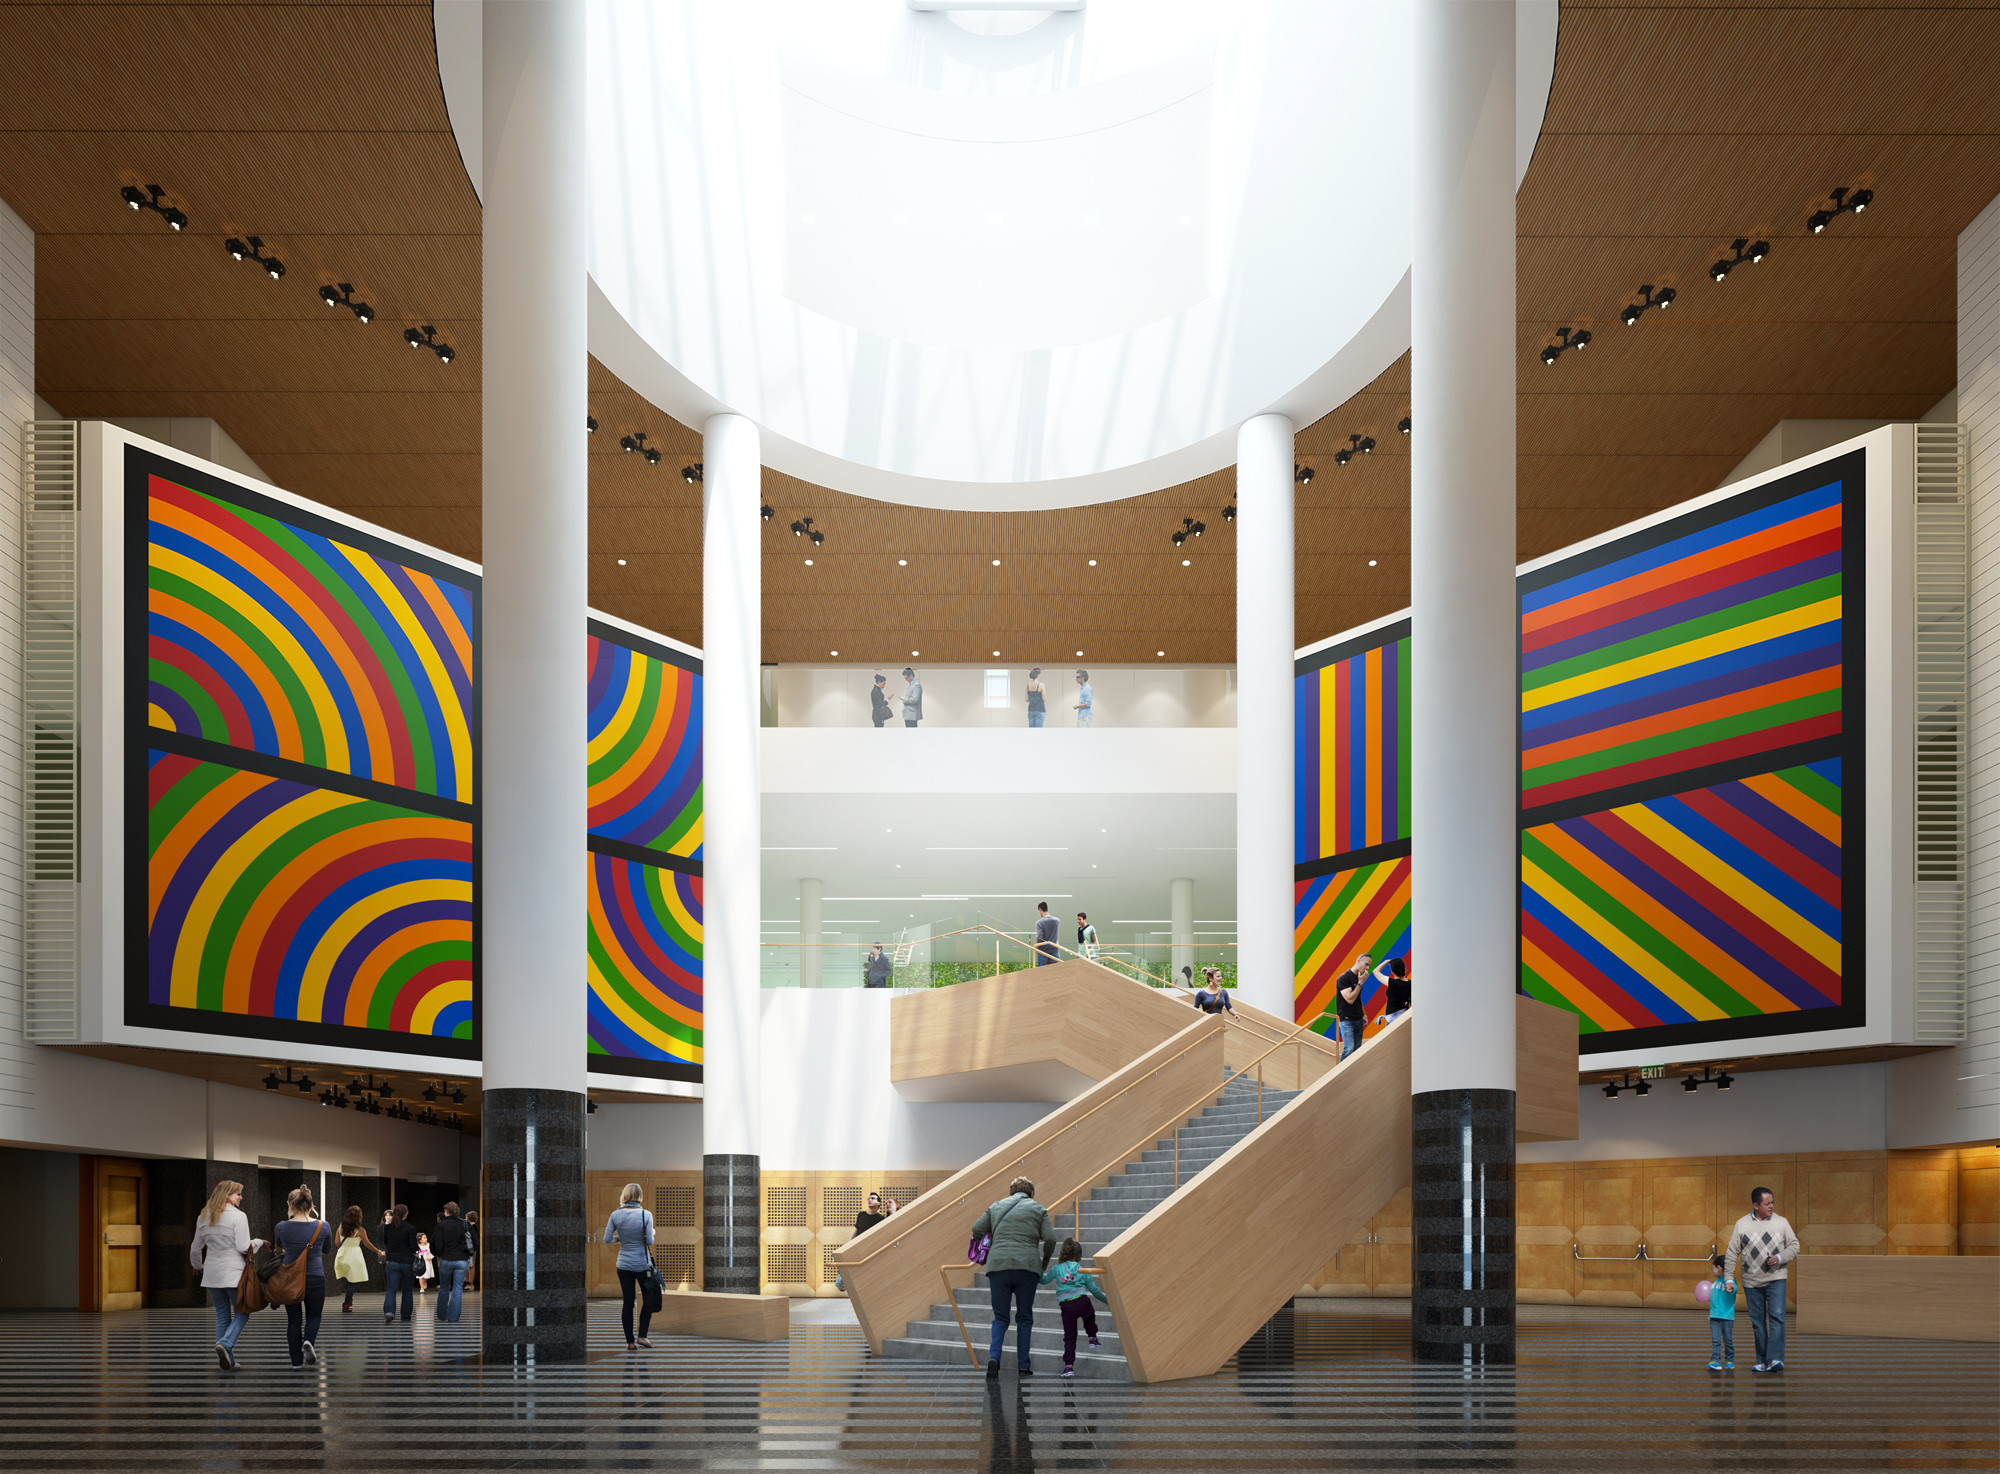 SFMOMA's new Snøhetta-designed stair (view from Third Street entrance) shown here with previous atrium art installation by Sol LeWitt (inaugural art installation for 2016 reopening to be announced); Rendering: Steelblue